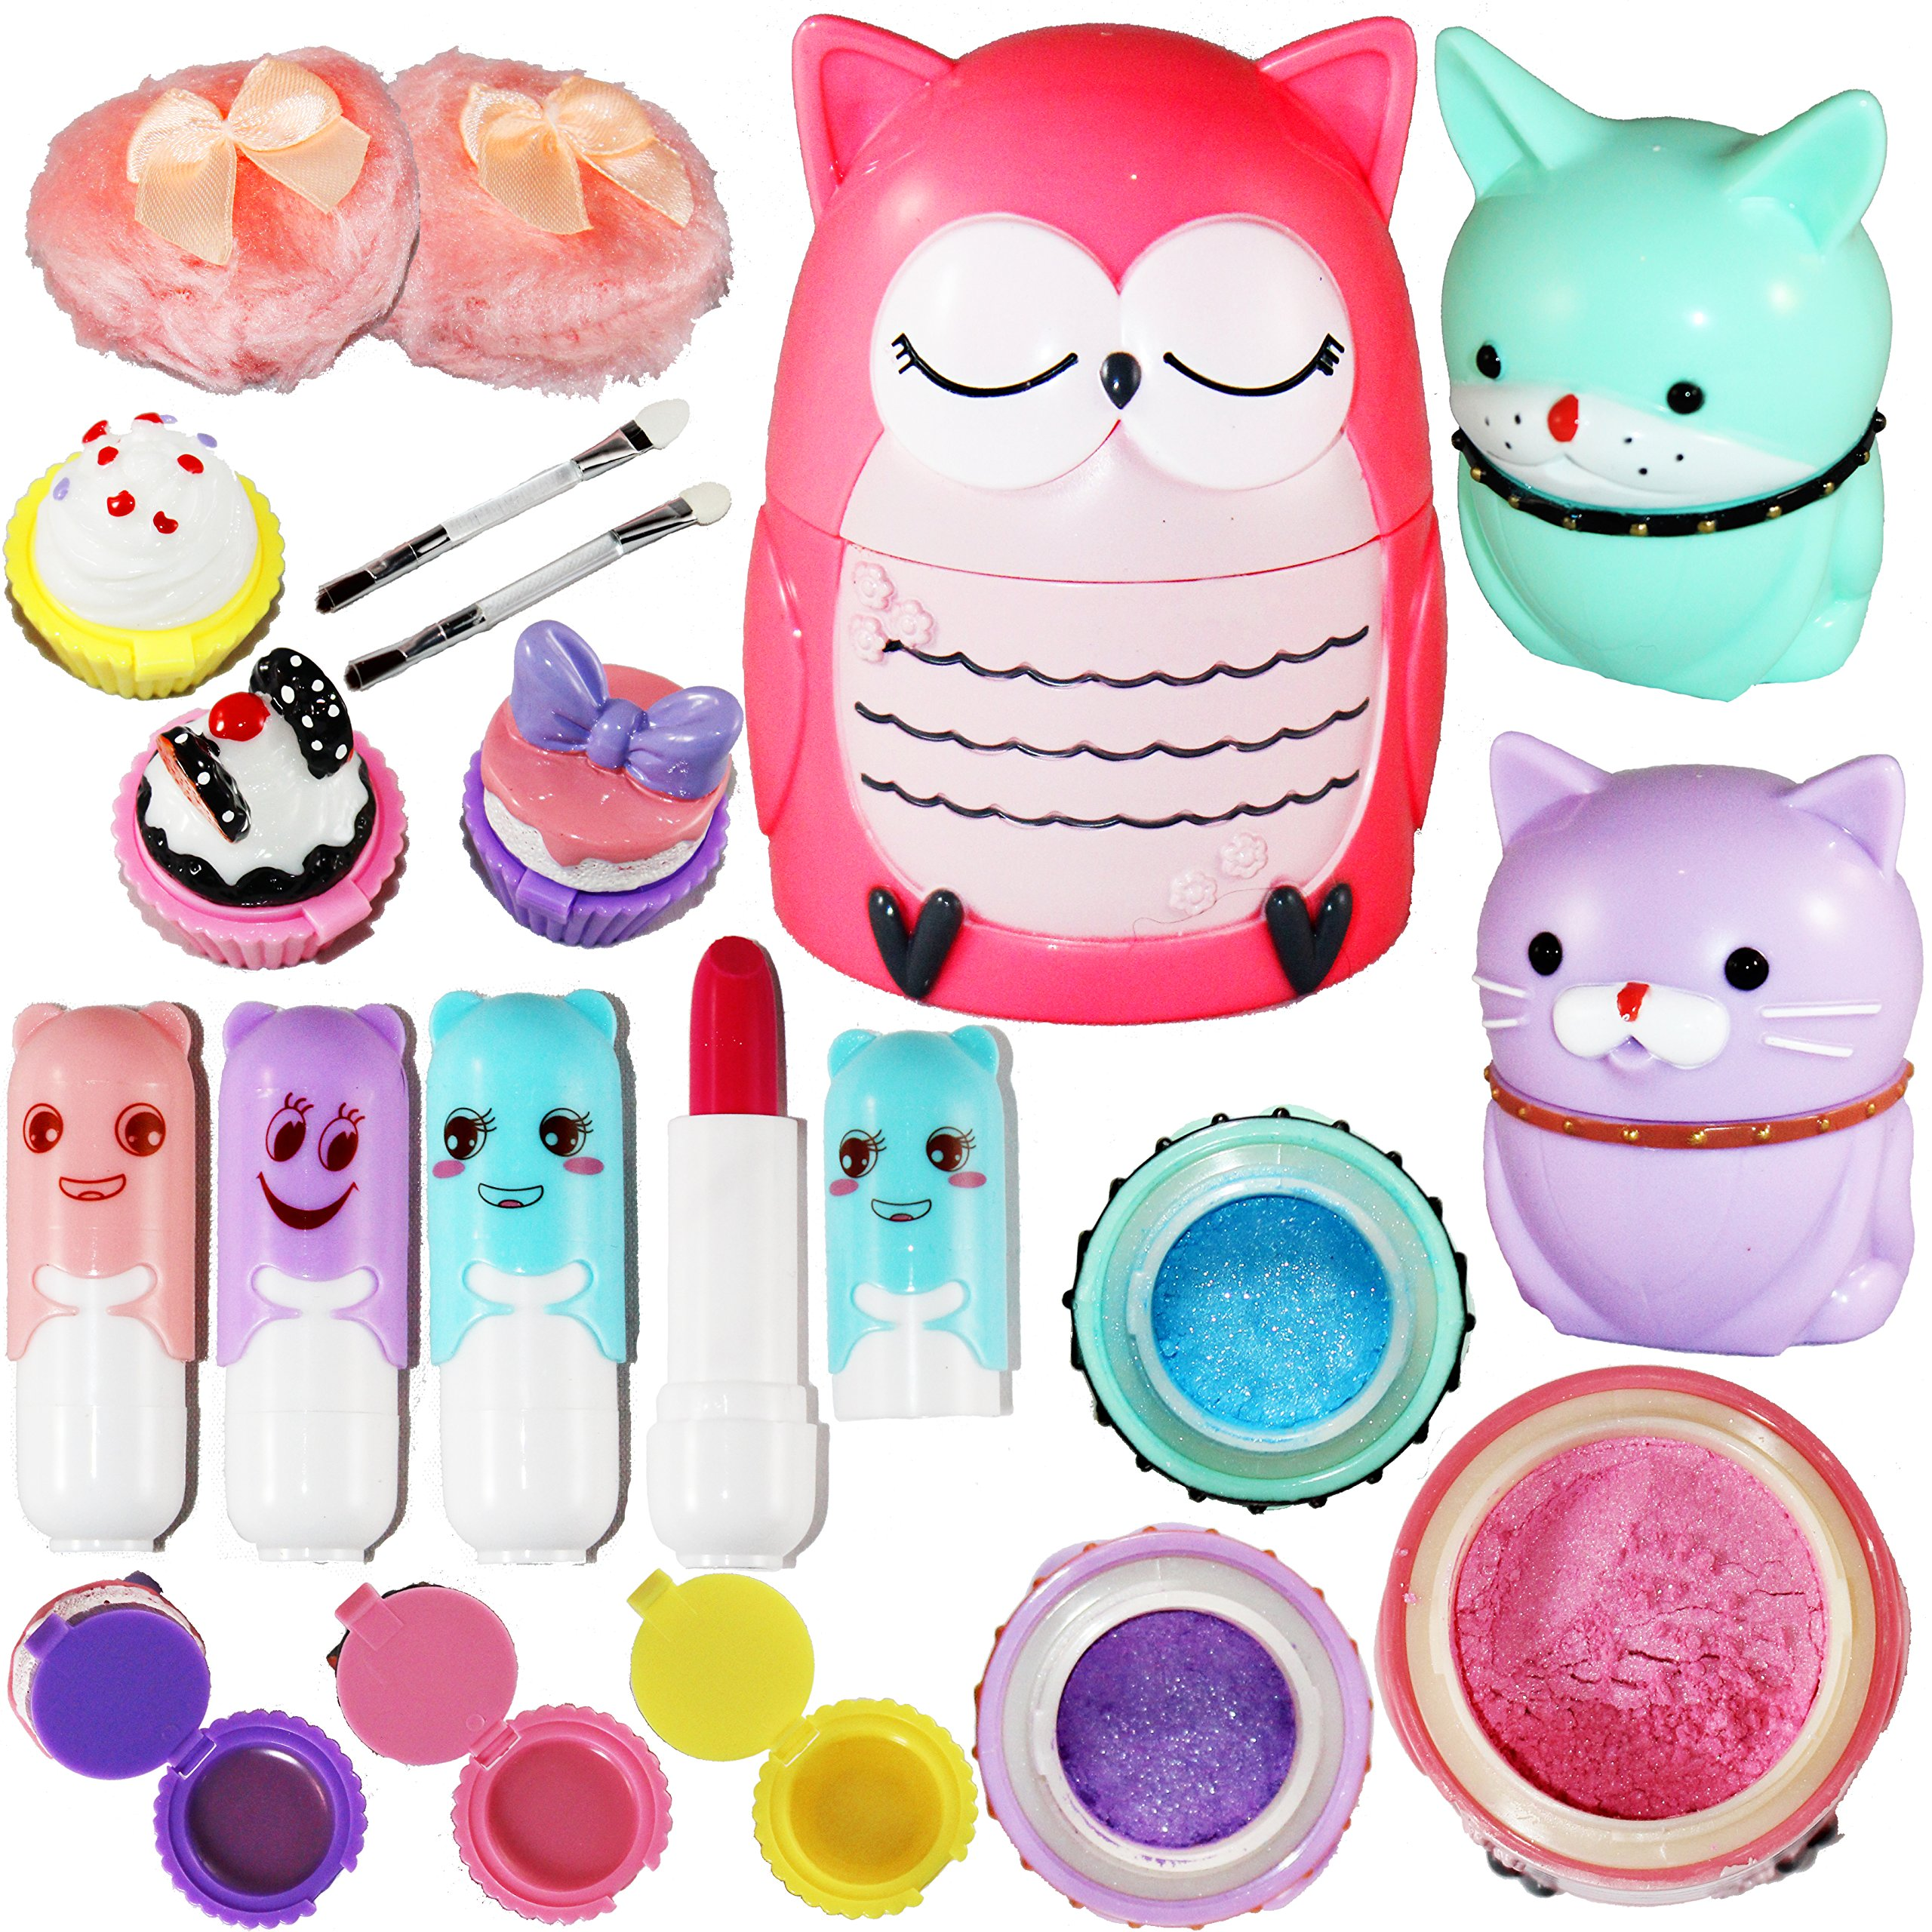 Joyin Toy All-in-one Girls Makeup Kit Including 4 Lip Balms, 3 Lip Gloss, 2 Shimmer Powders/Eyeshadow, and 1 Large Blush.